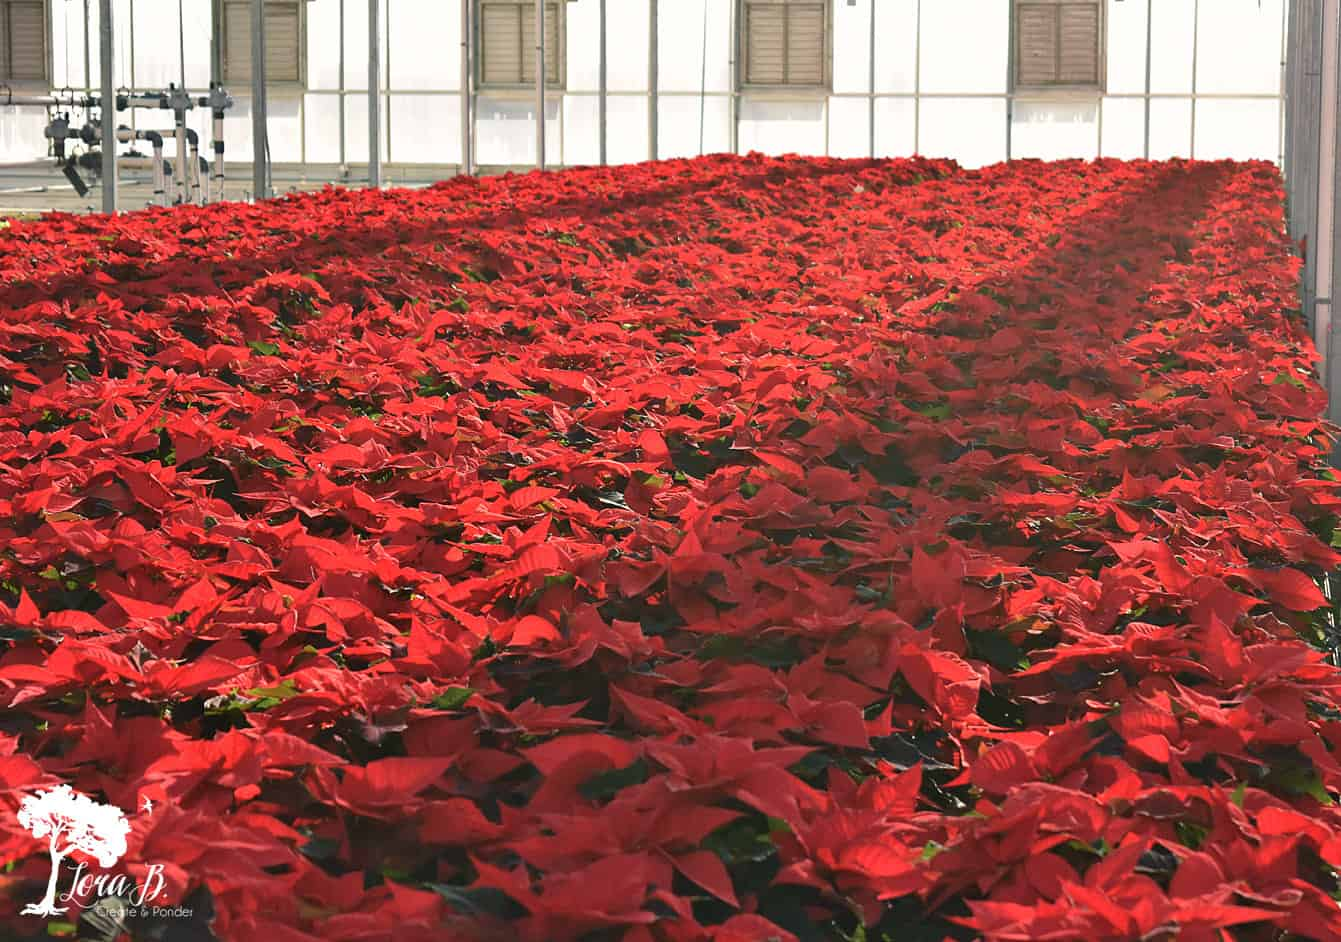 Red Poinsettias in greenhouse.